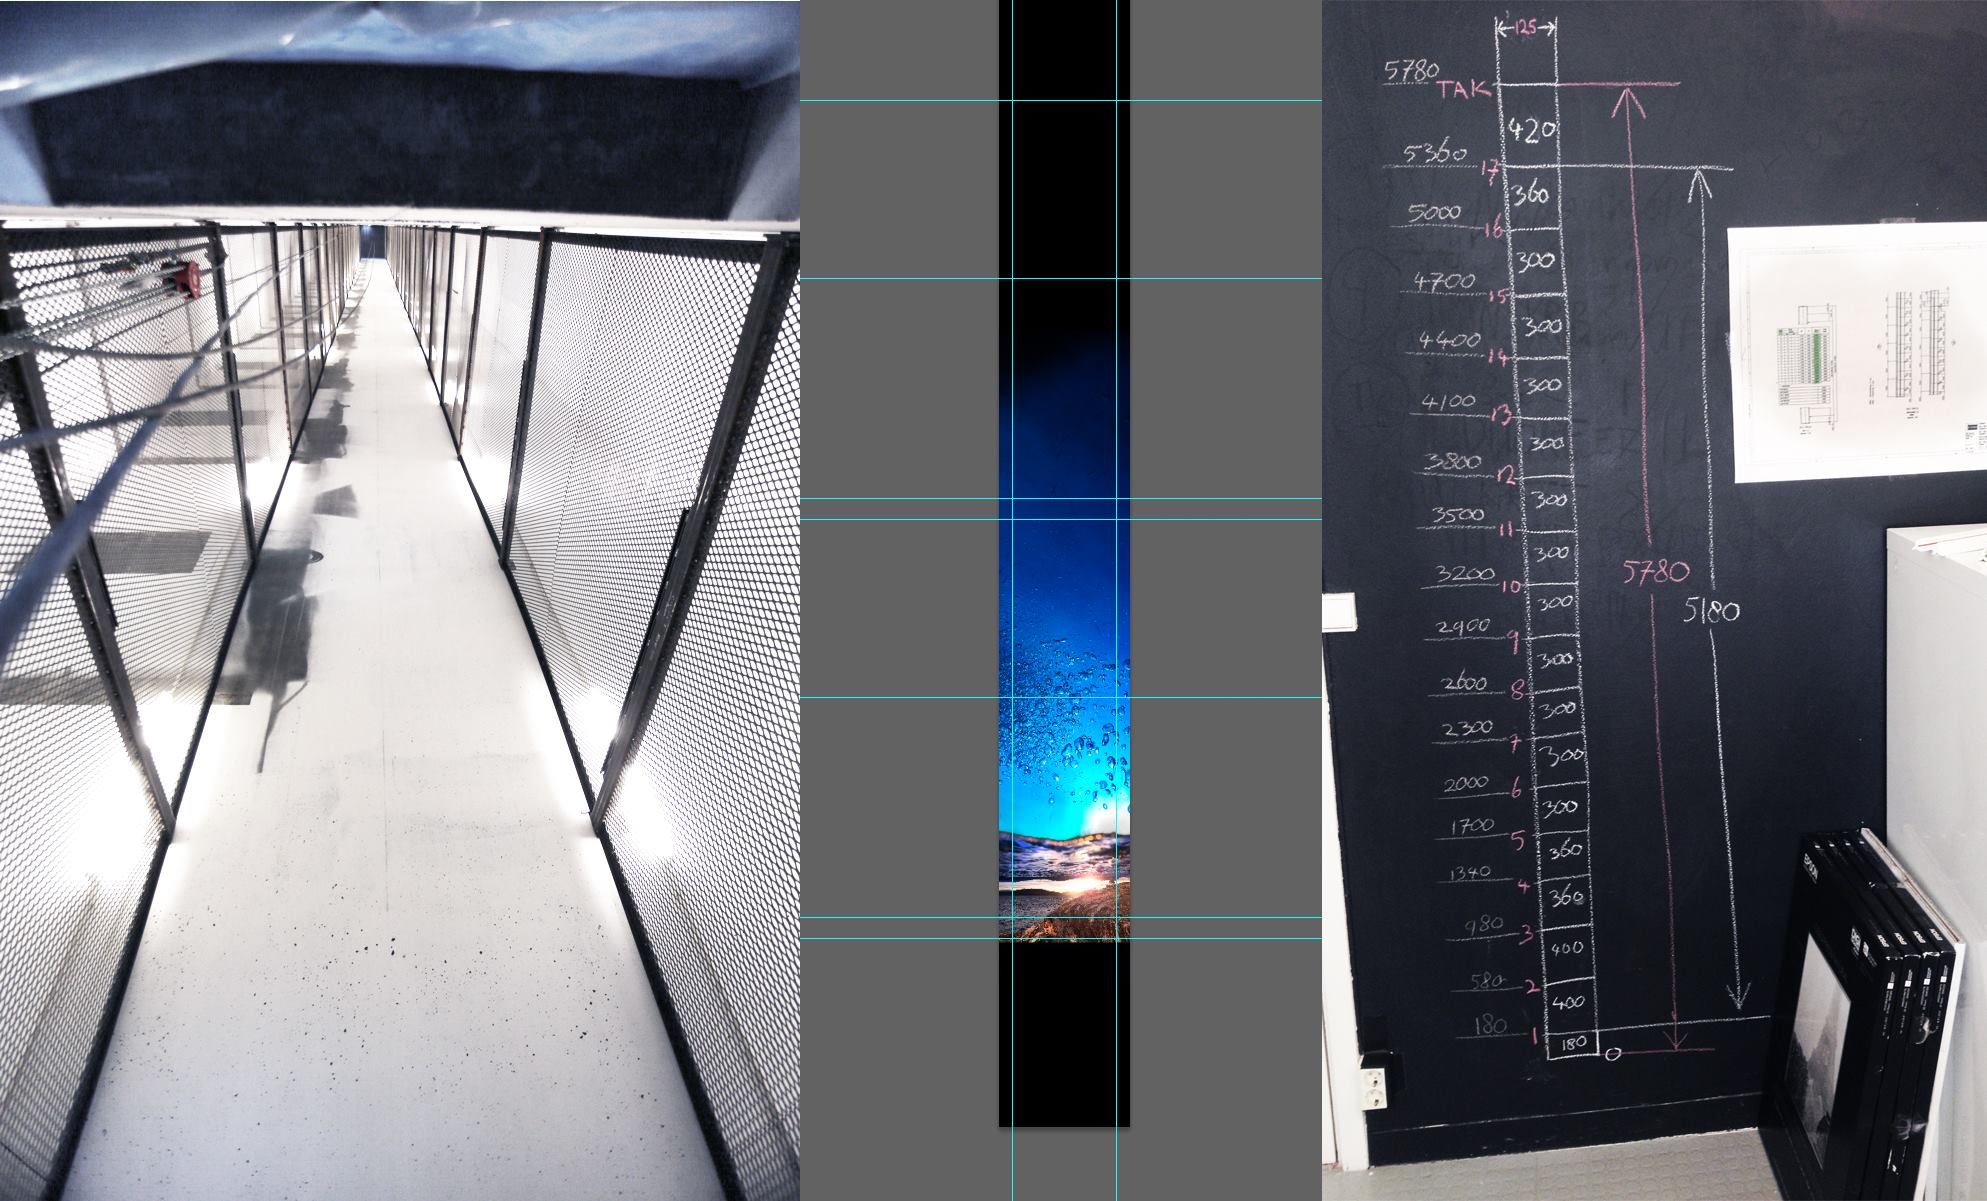 First calculations and drawings of each floor level and the distance in between, including floor thickness.